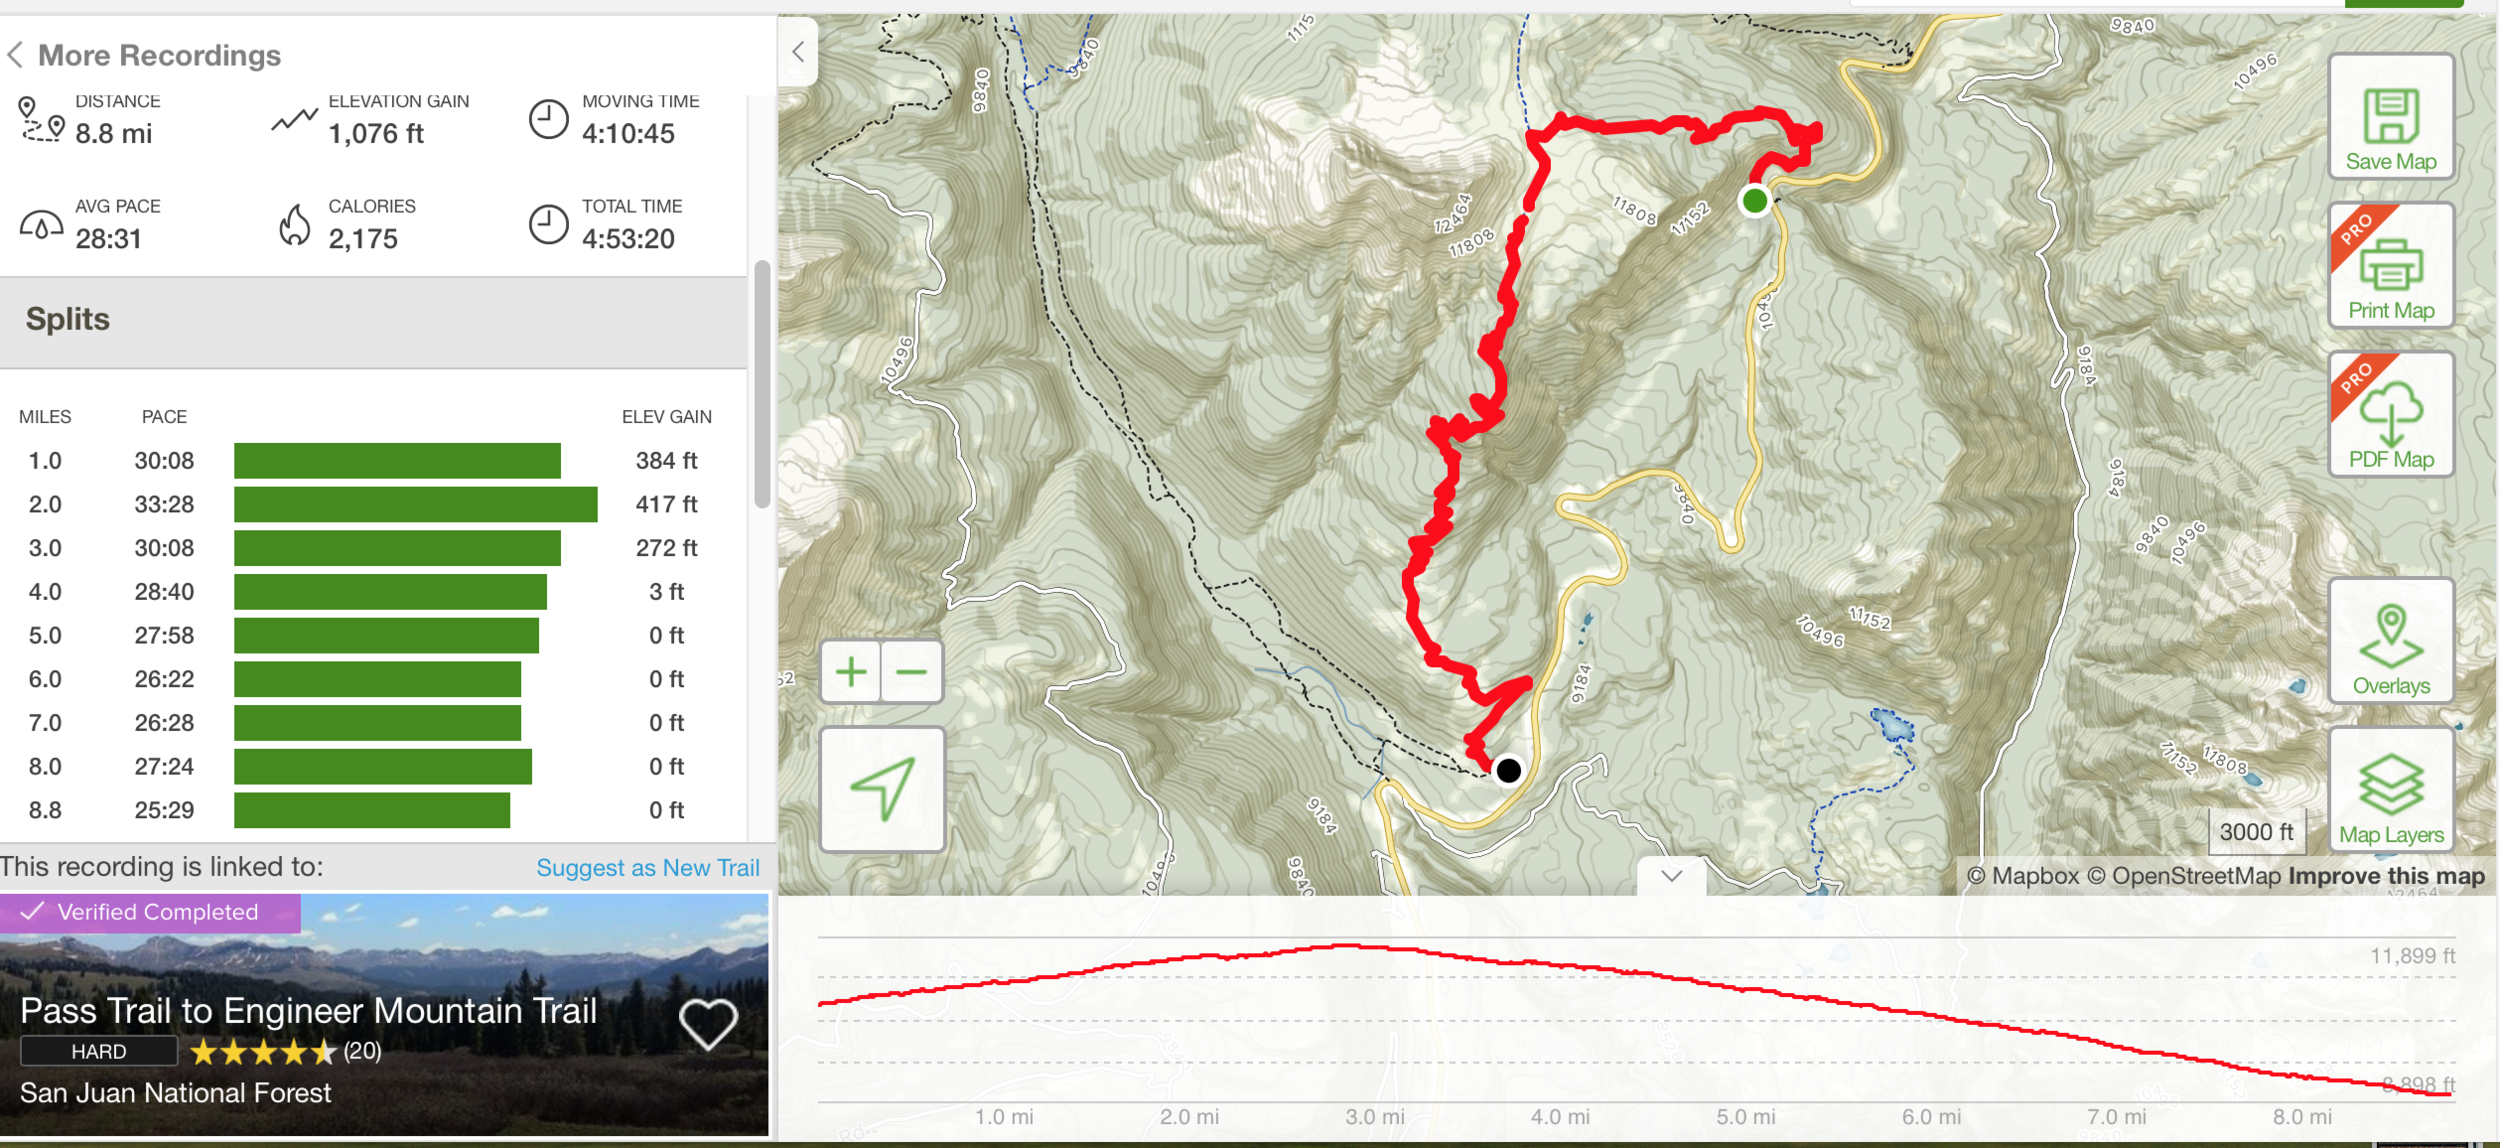 Statistics for the Pass Trail to Engineer Mountain Trail Through Hike